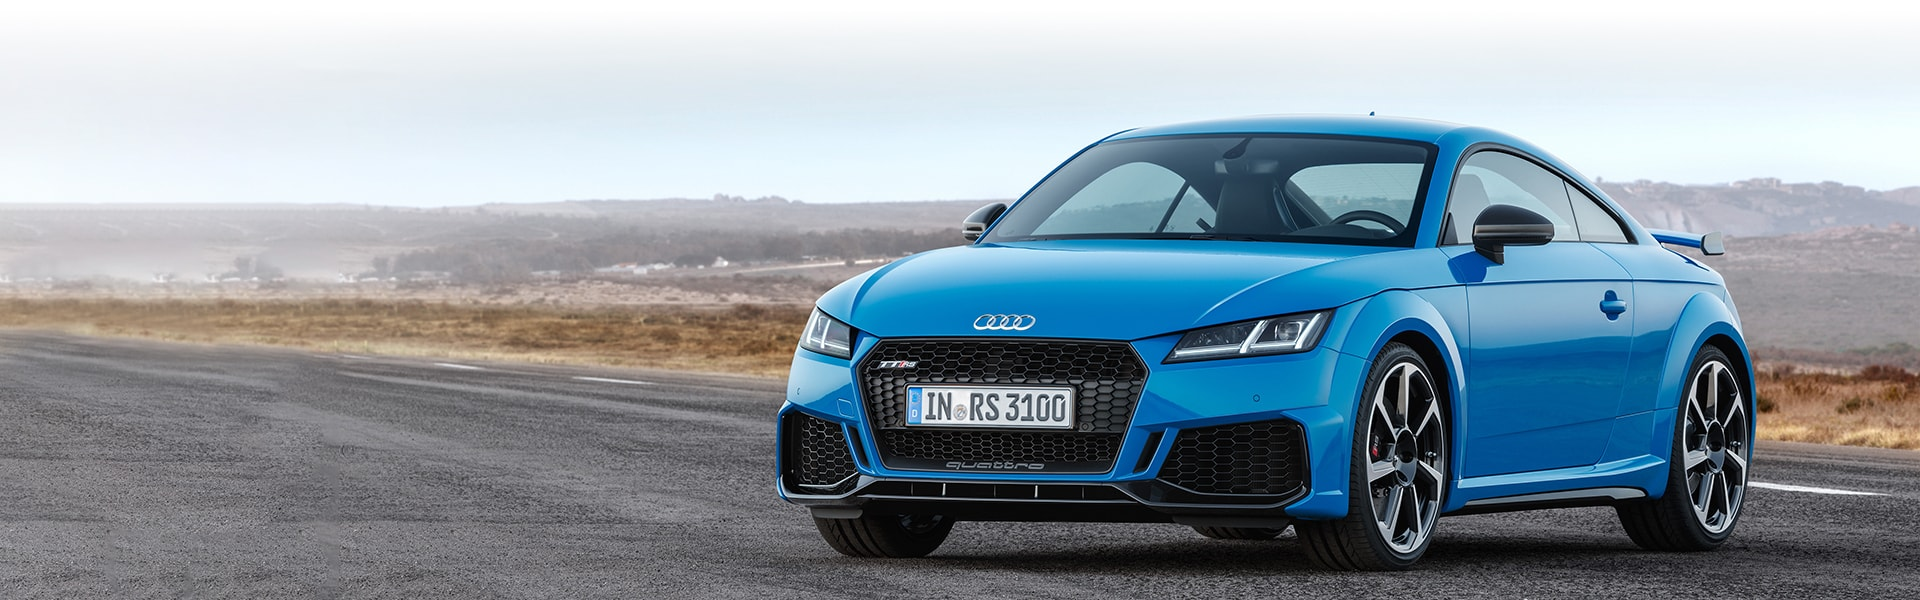 93 Best 2019 Audi Tt Rs Images